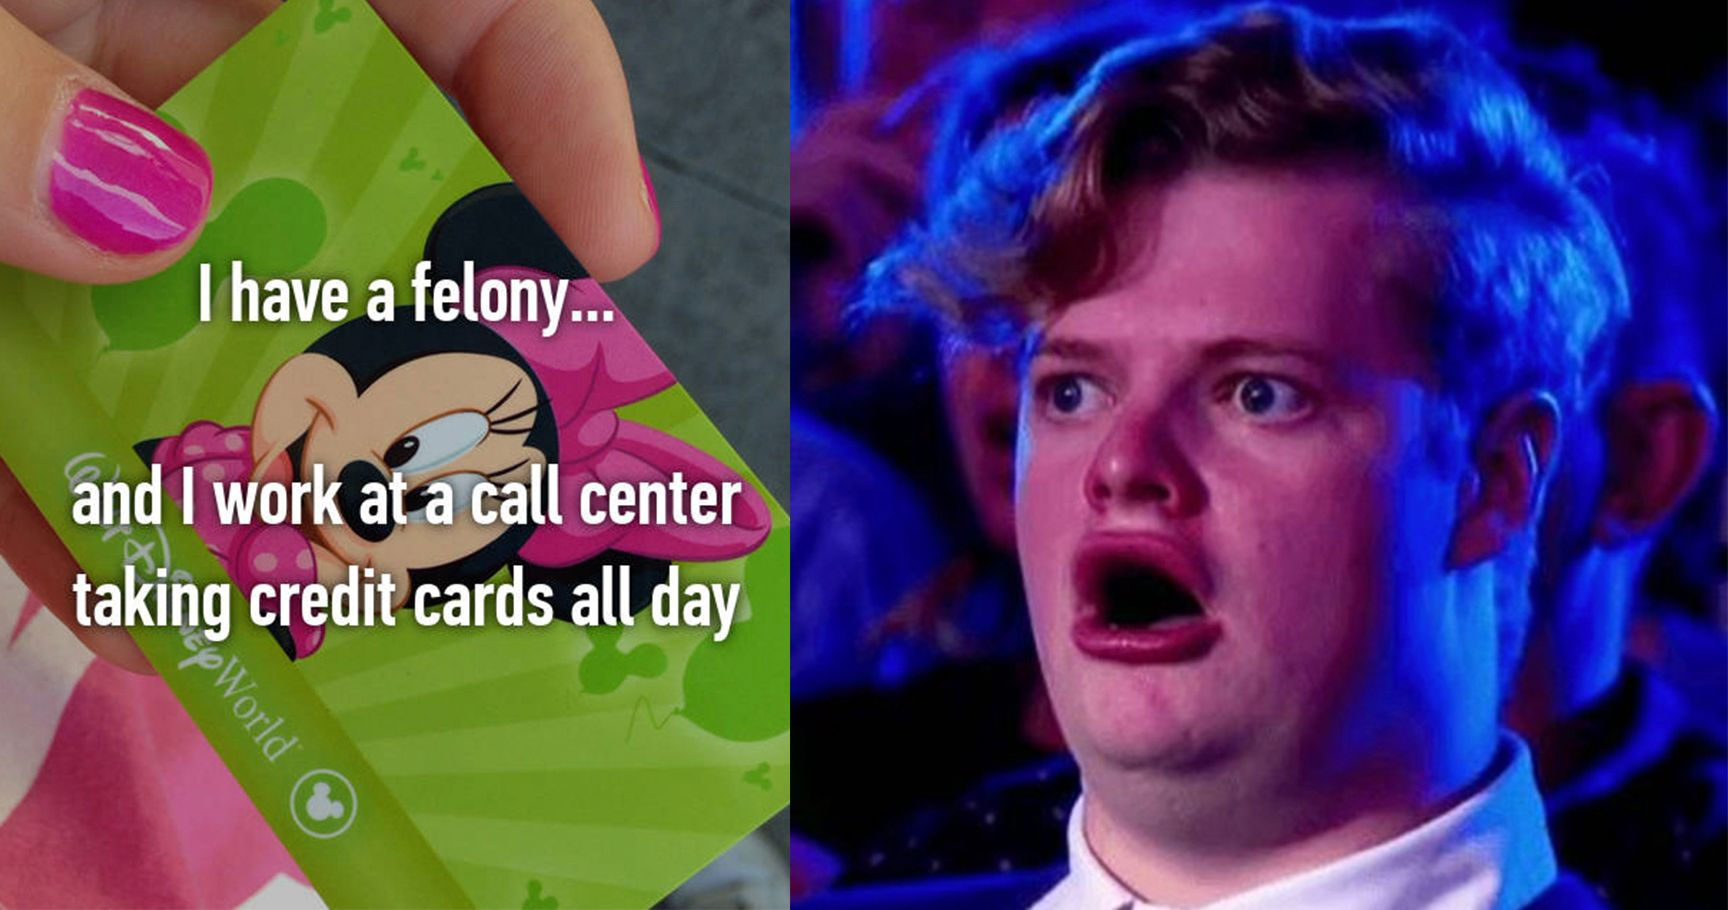 15 Jaw-Dropping Whisper Confessions From Call Center Employees